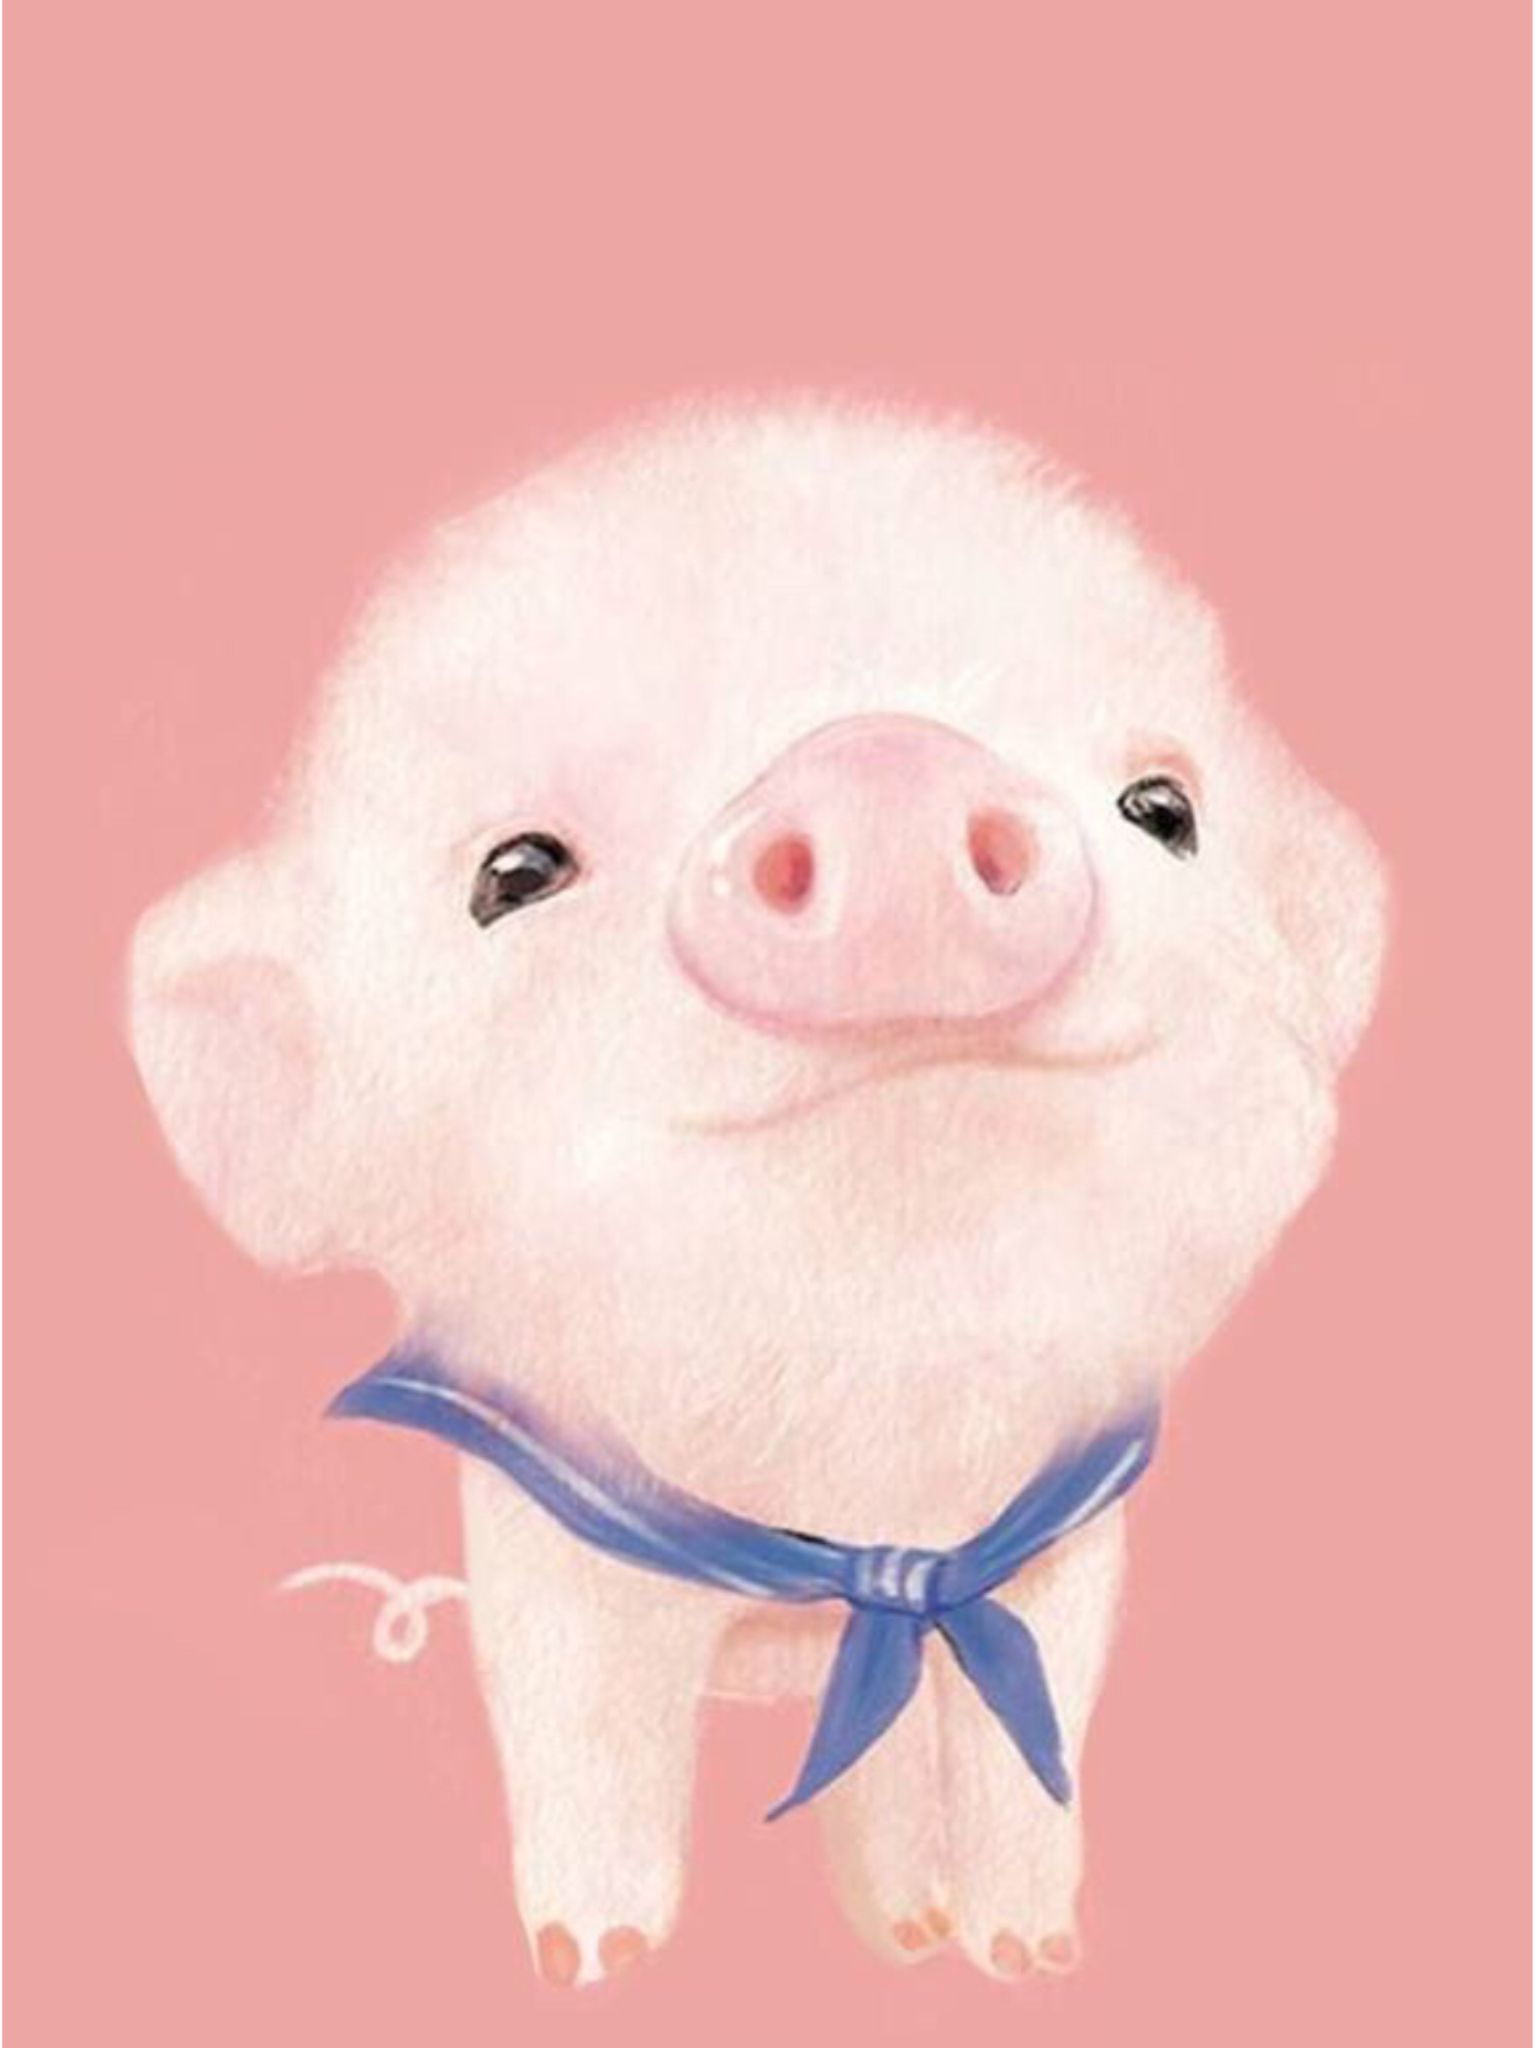 Cute pig wallpaper | Wallpapers | Pinterest | Pig wallpaper ...